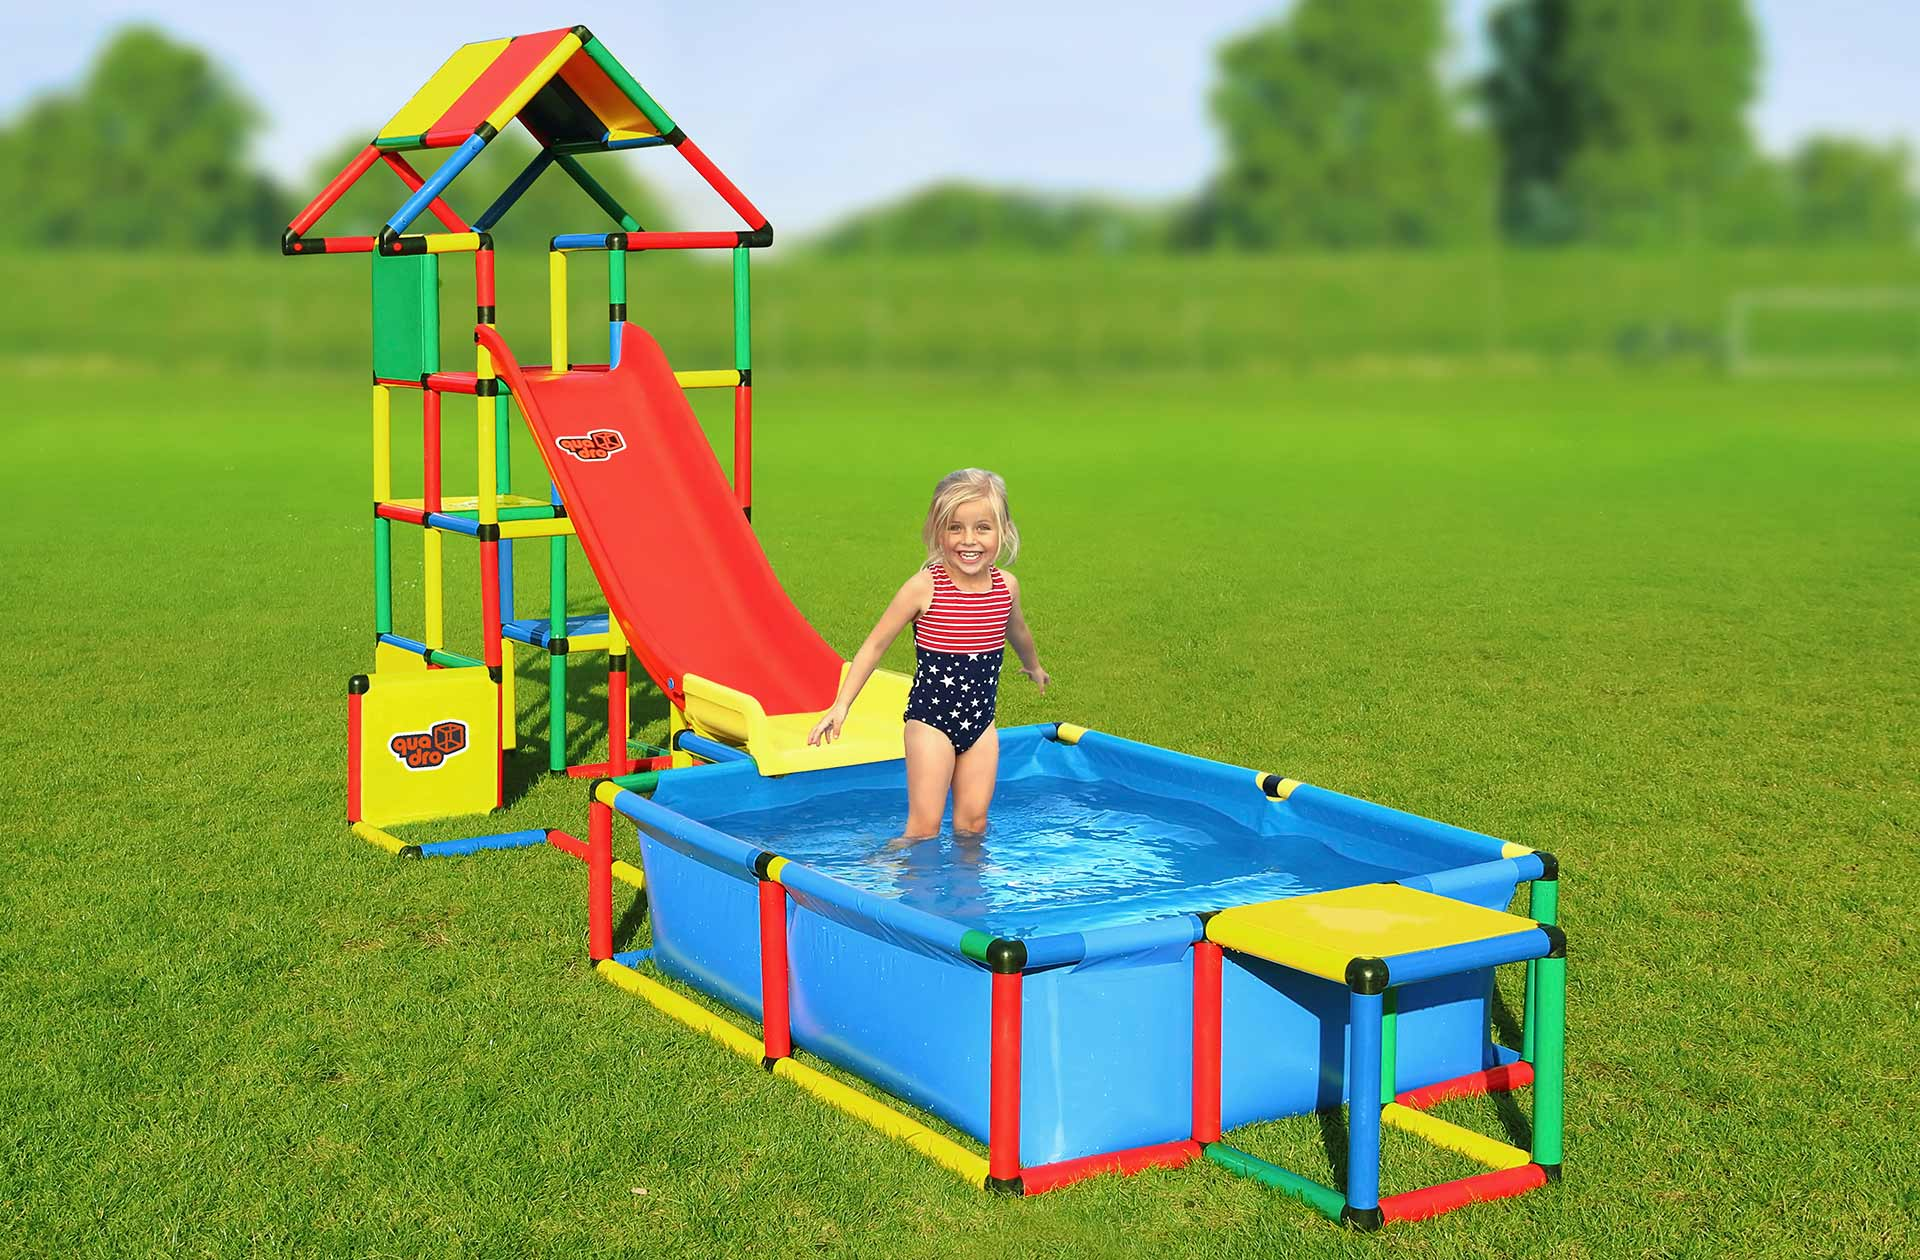 Girl in QUADRO pool with tower and slide